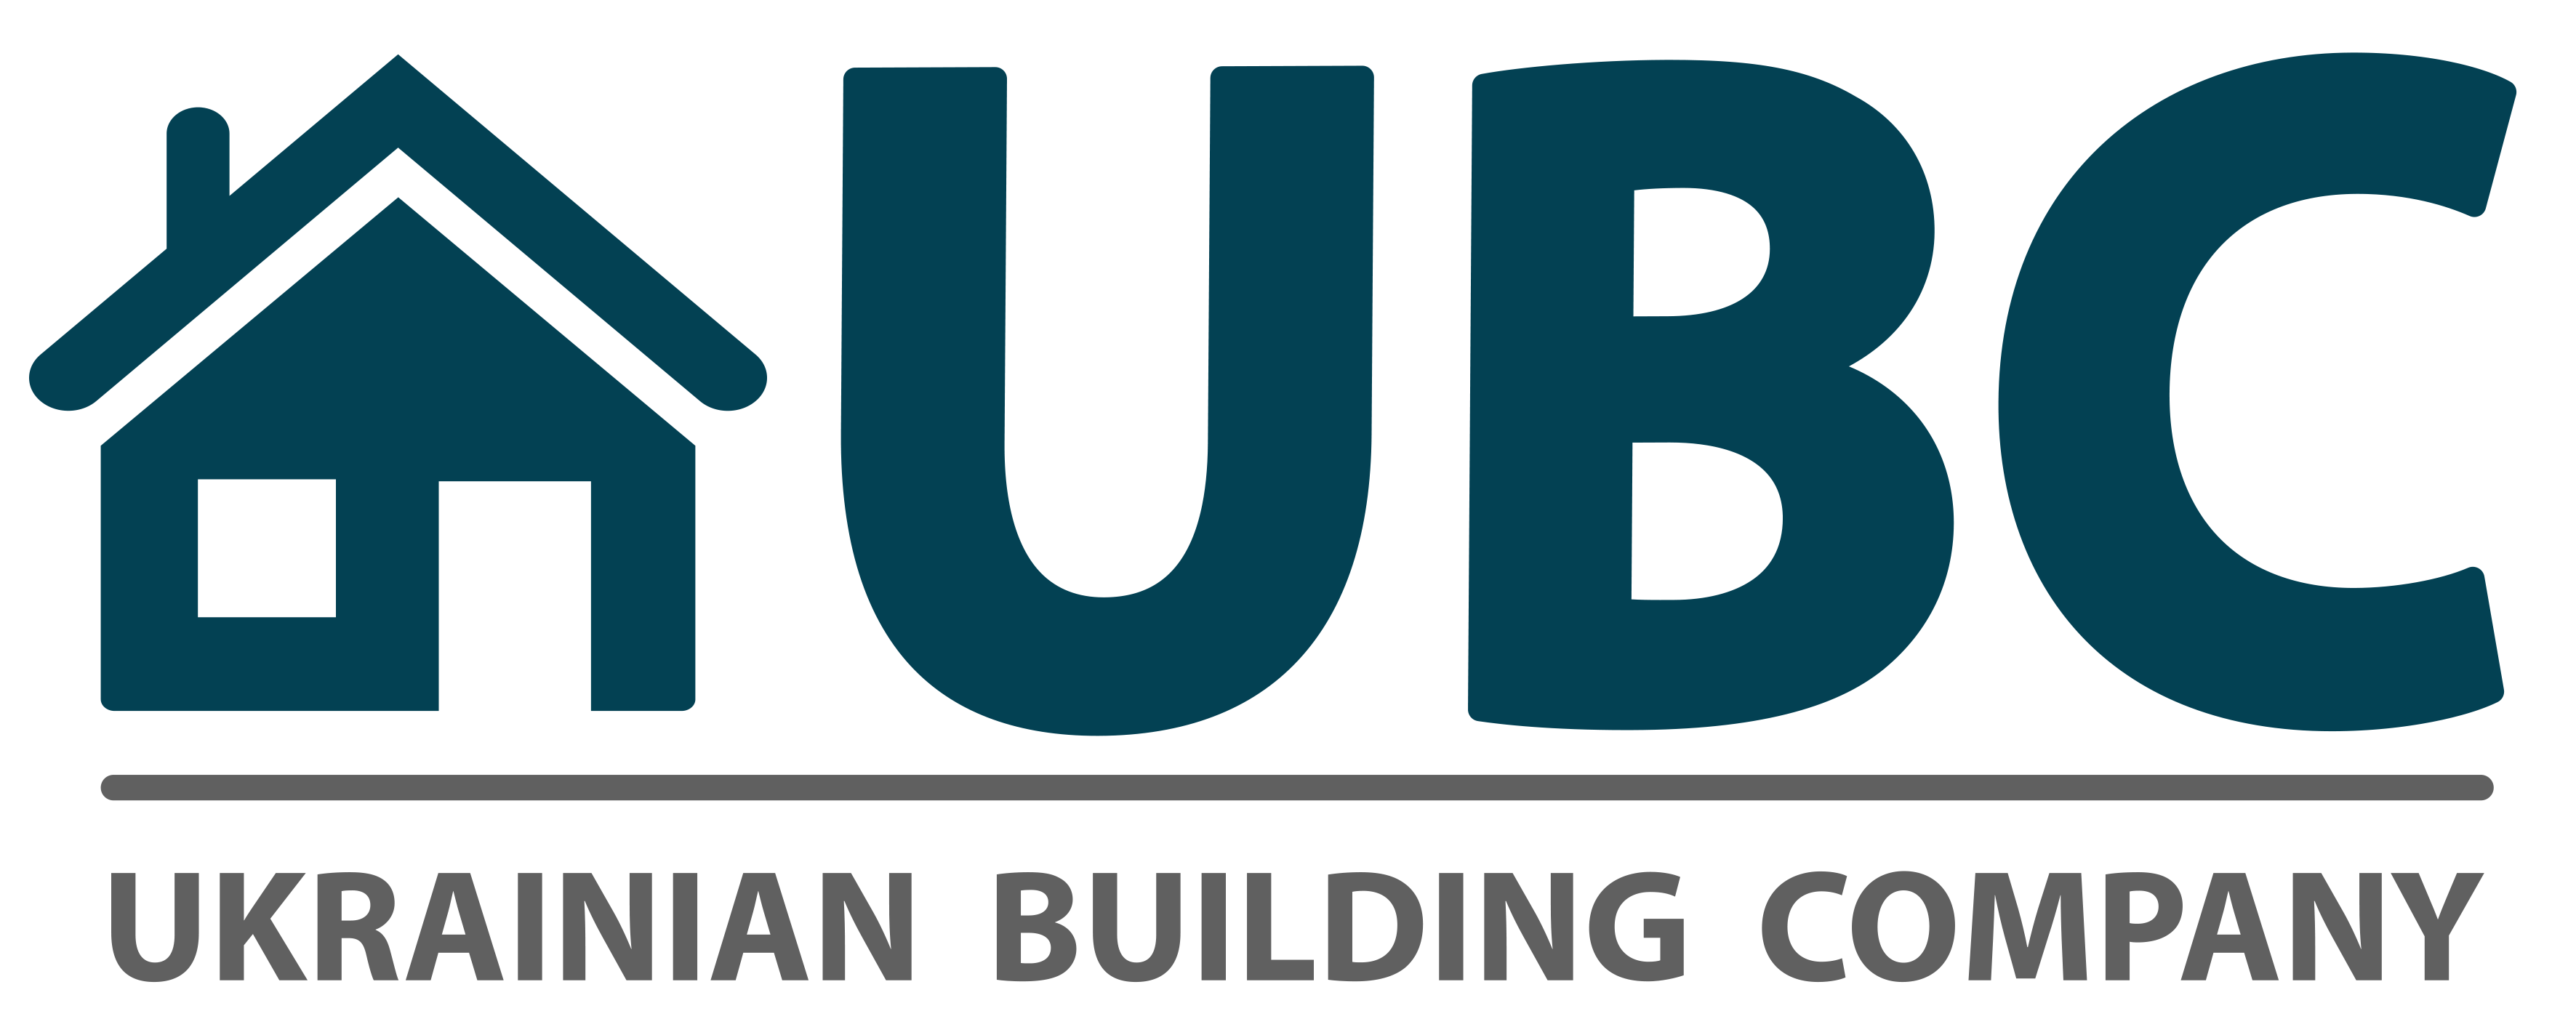 UBC Ukrainian renovation construction company